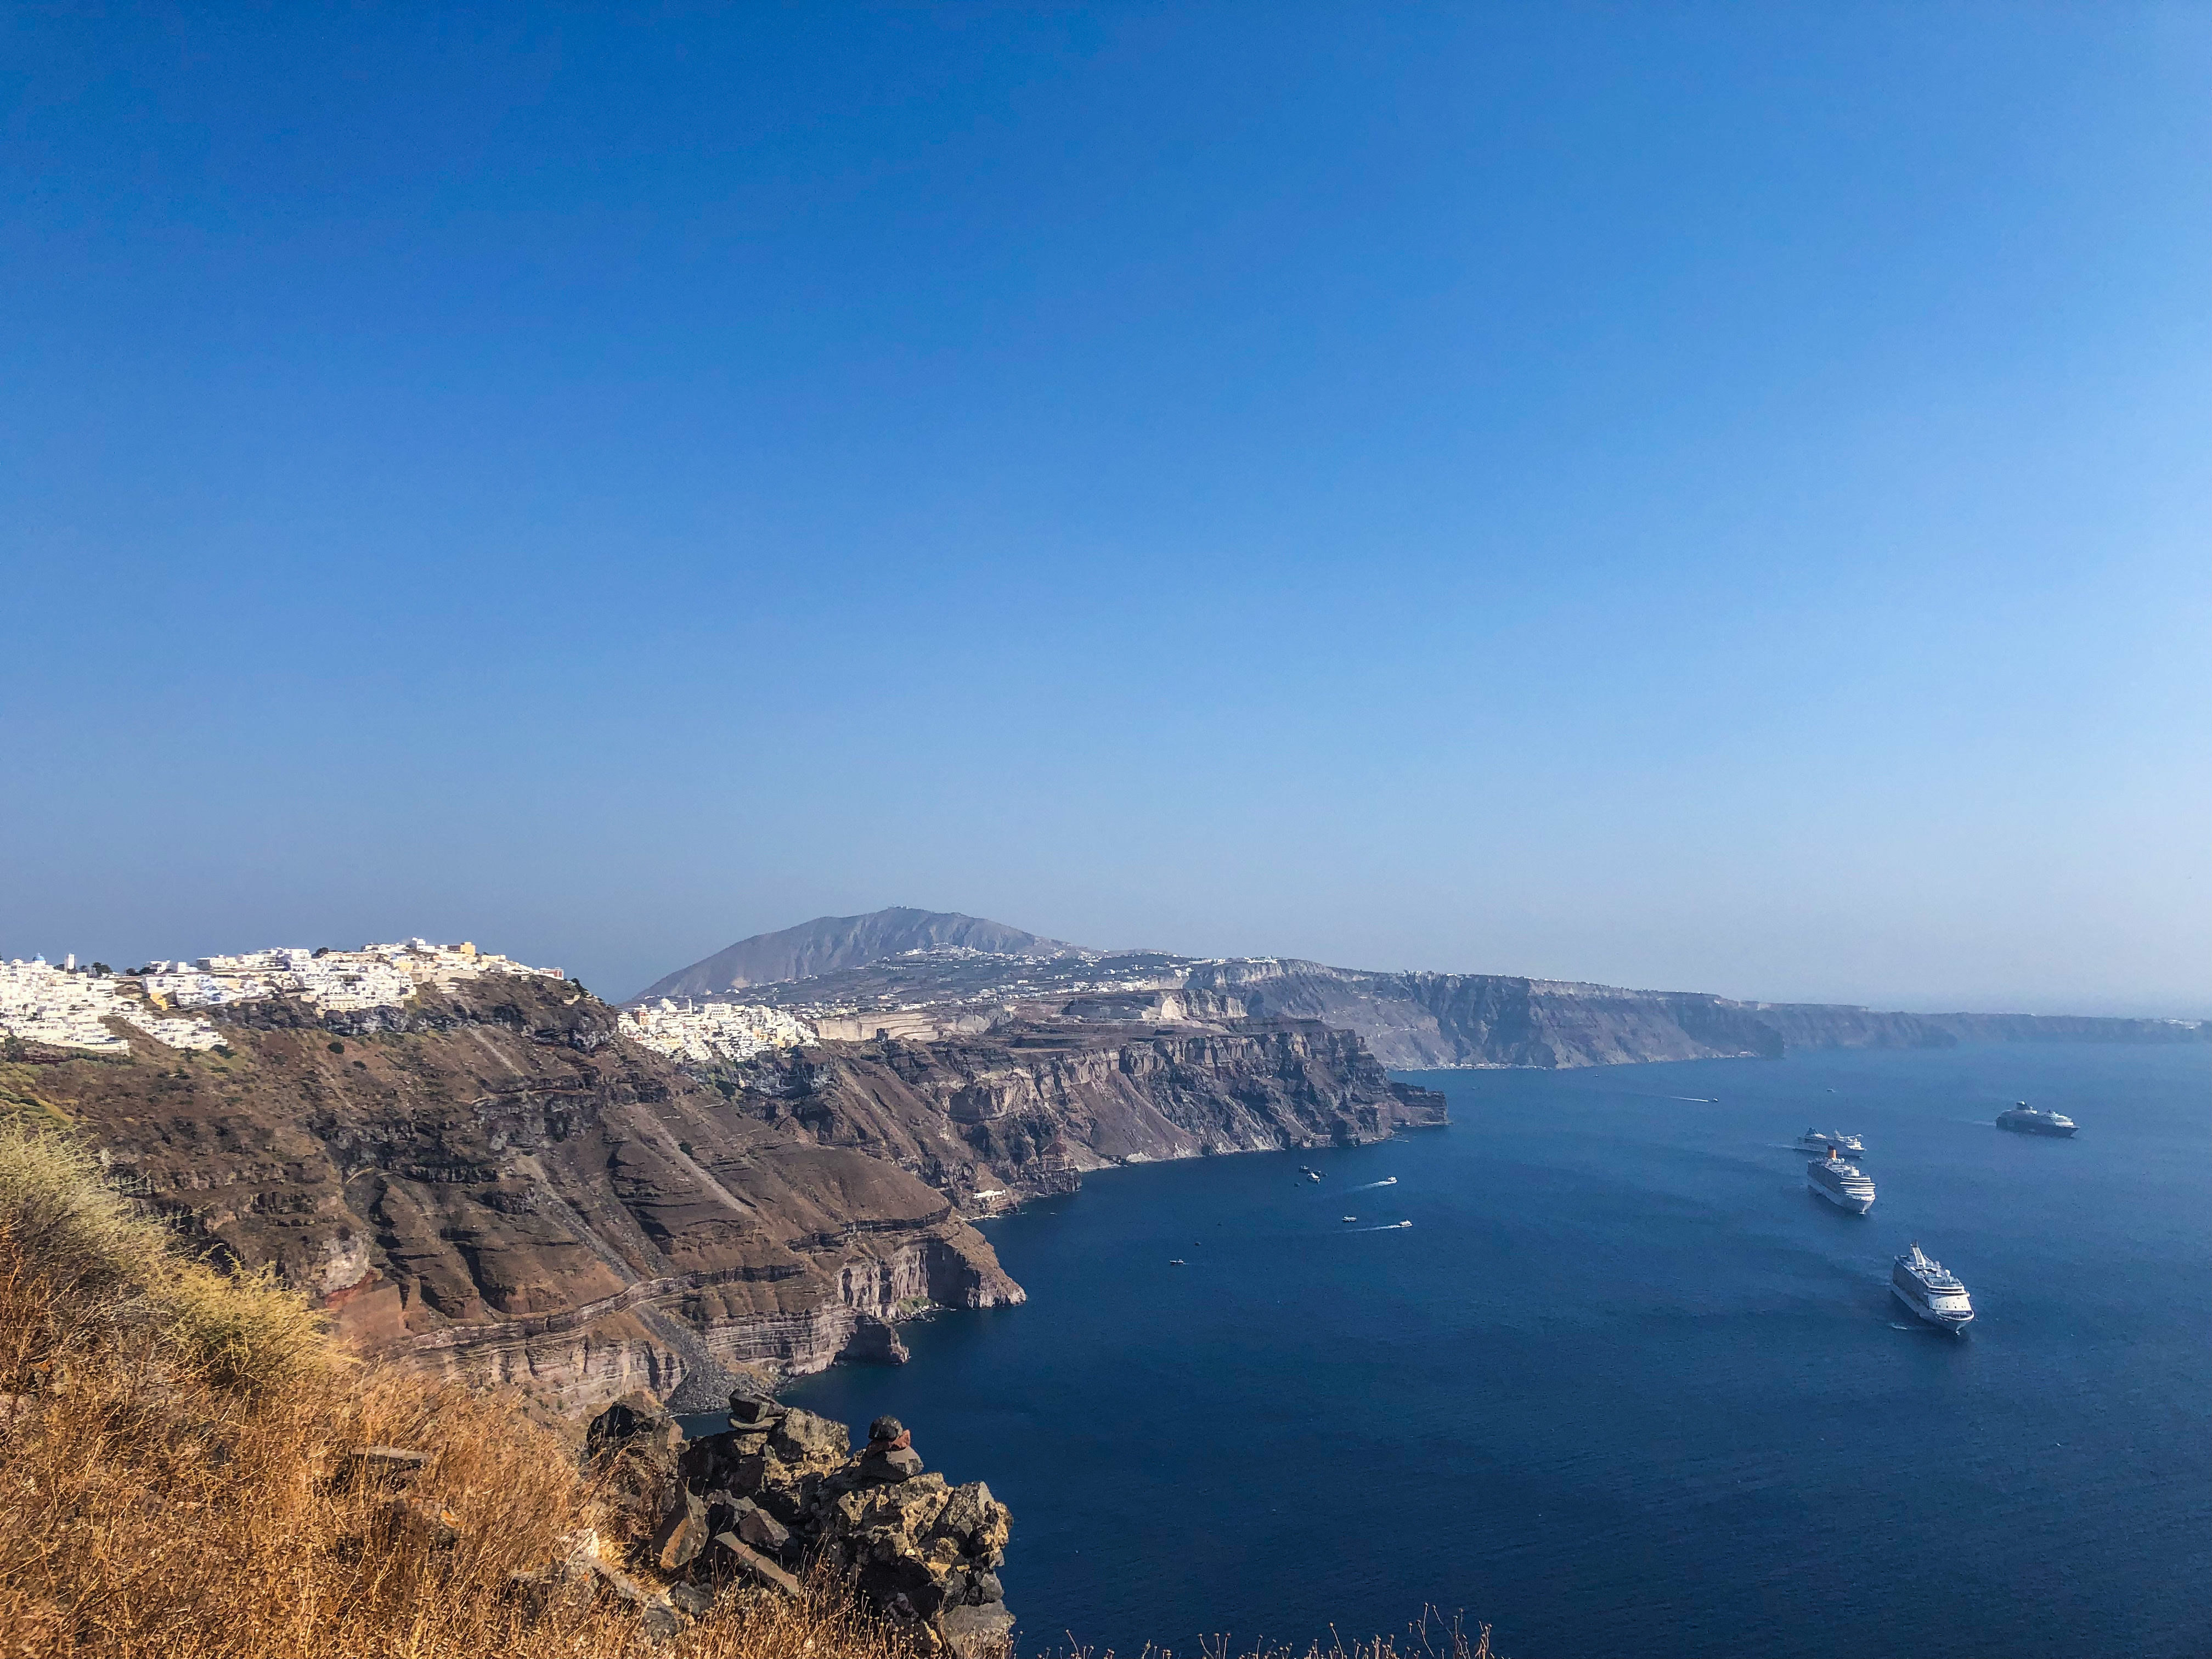 View of Fira in the distance and the cruise ships that will tender thousands of people onto the island for the day.